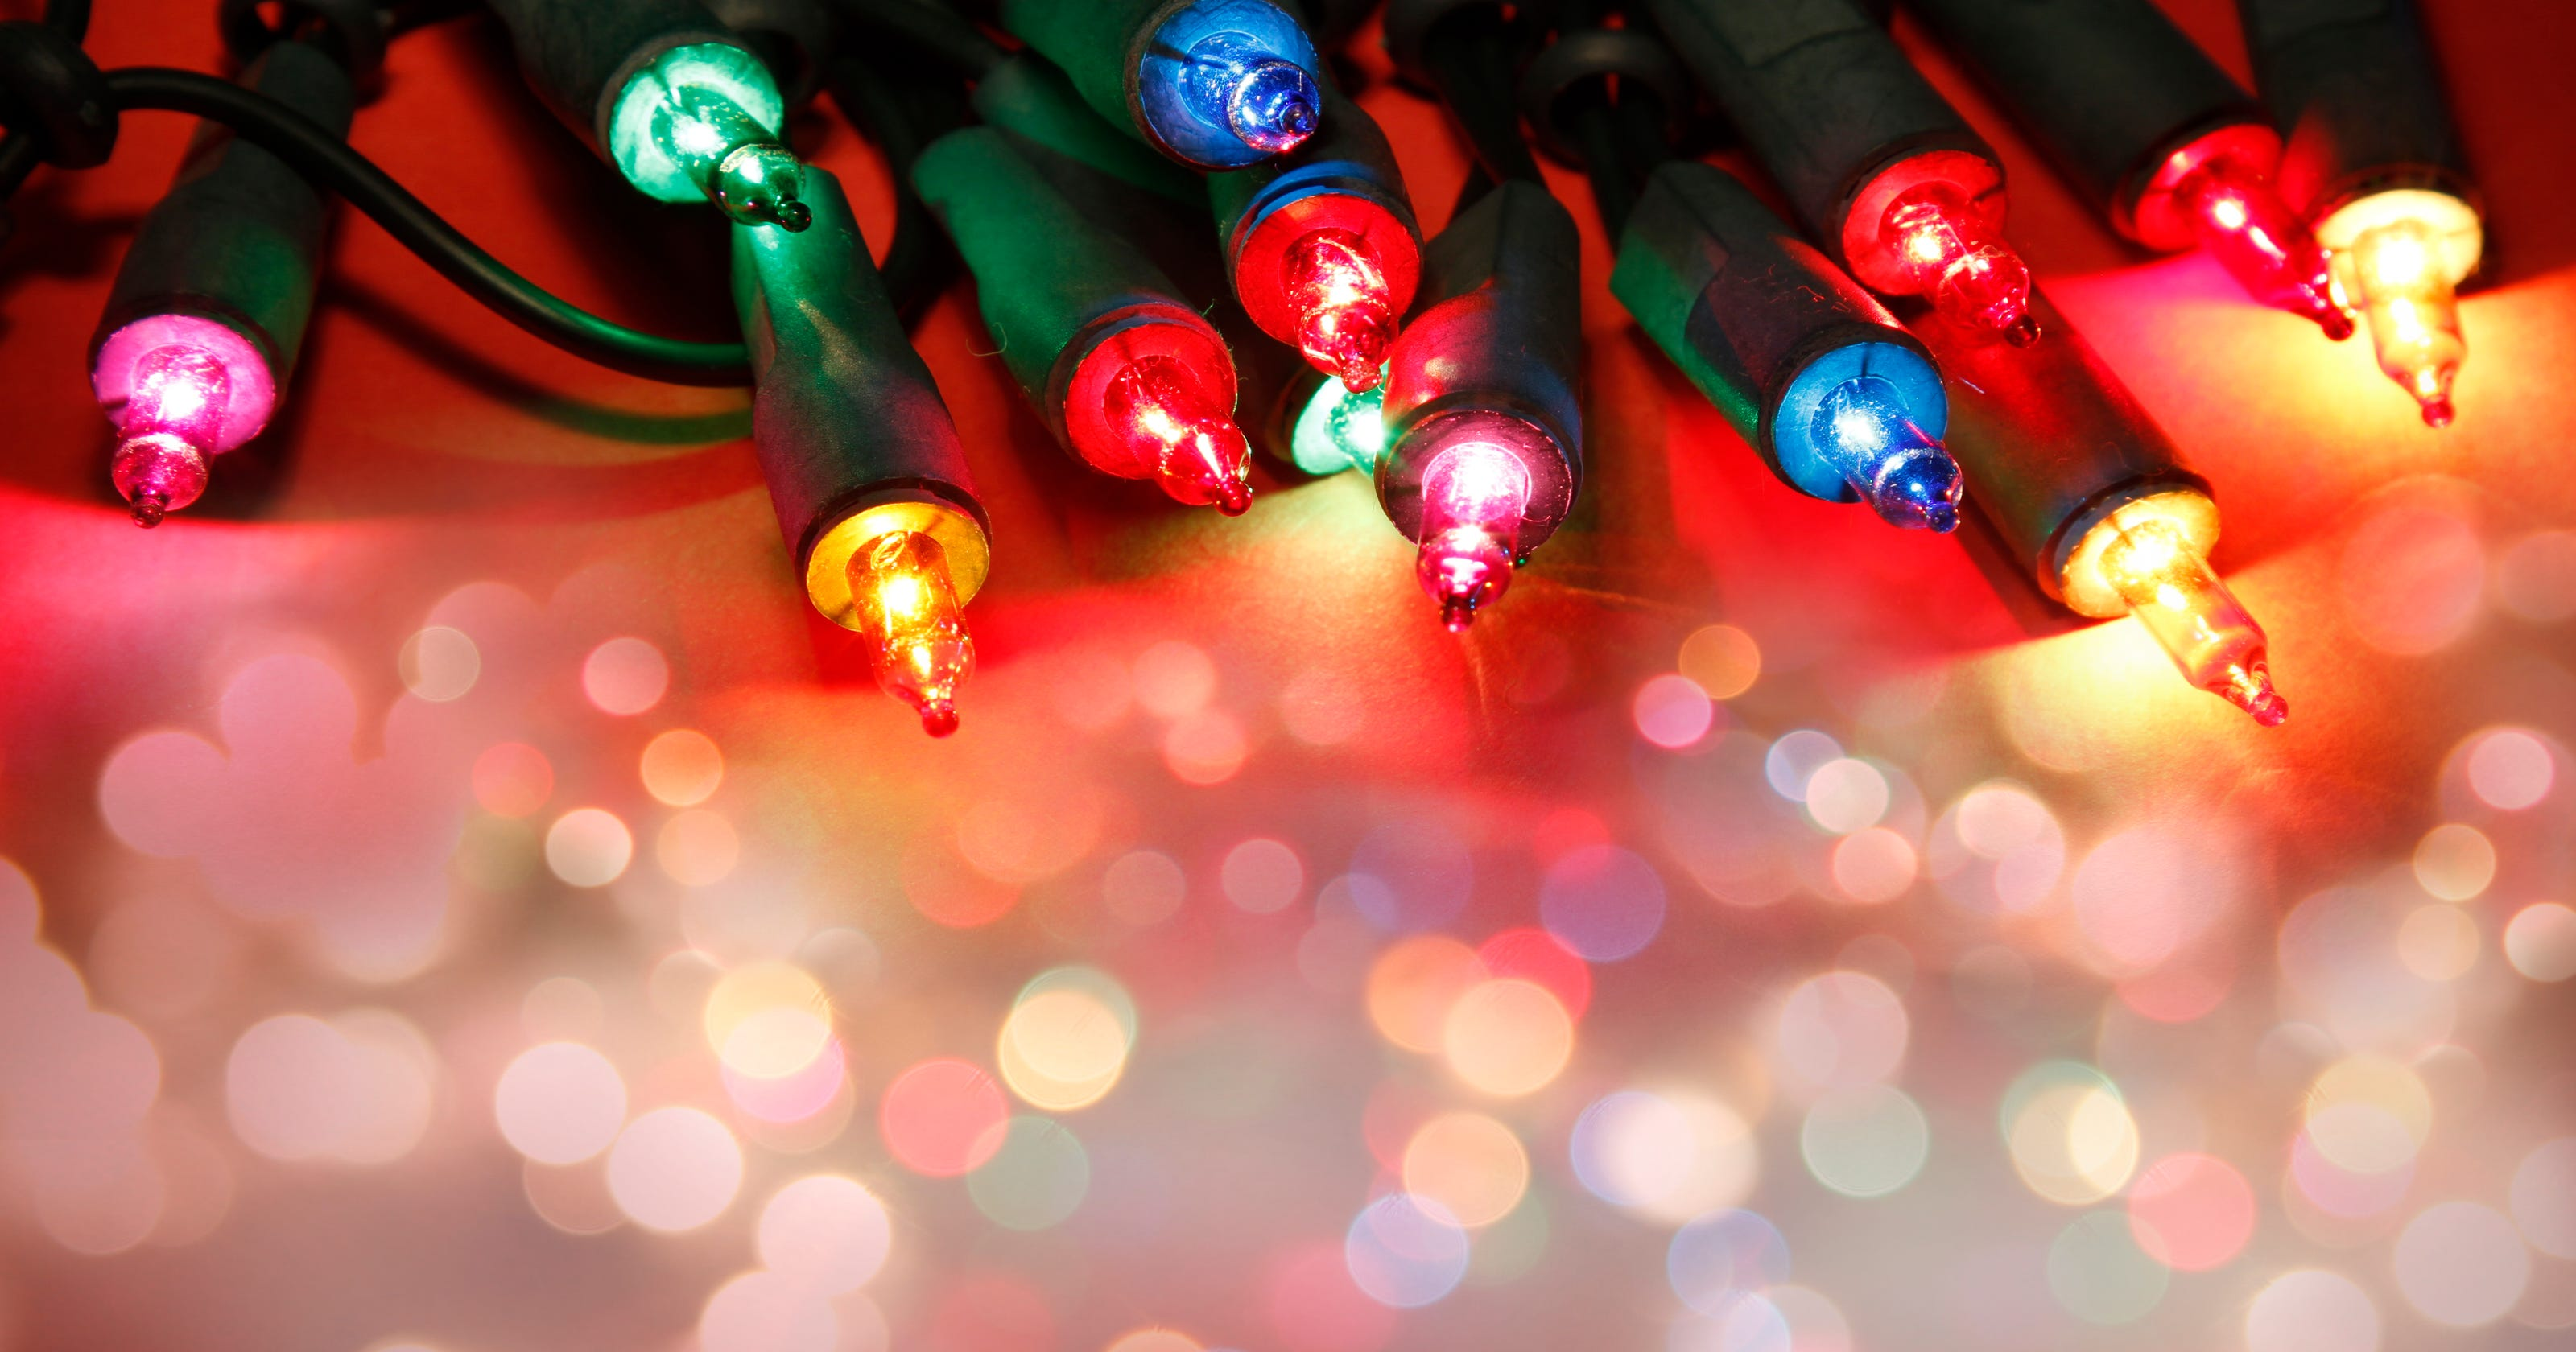 The real war on Christmas: White lights vs. multi-colored ...